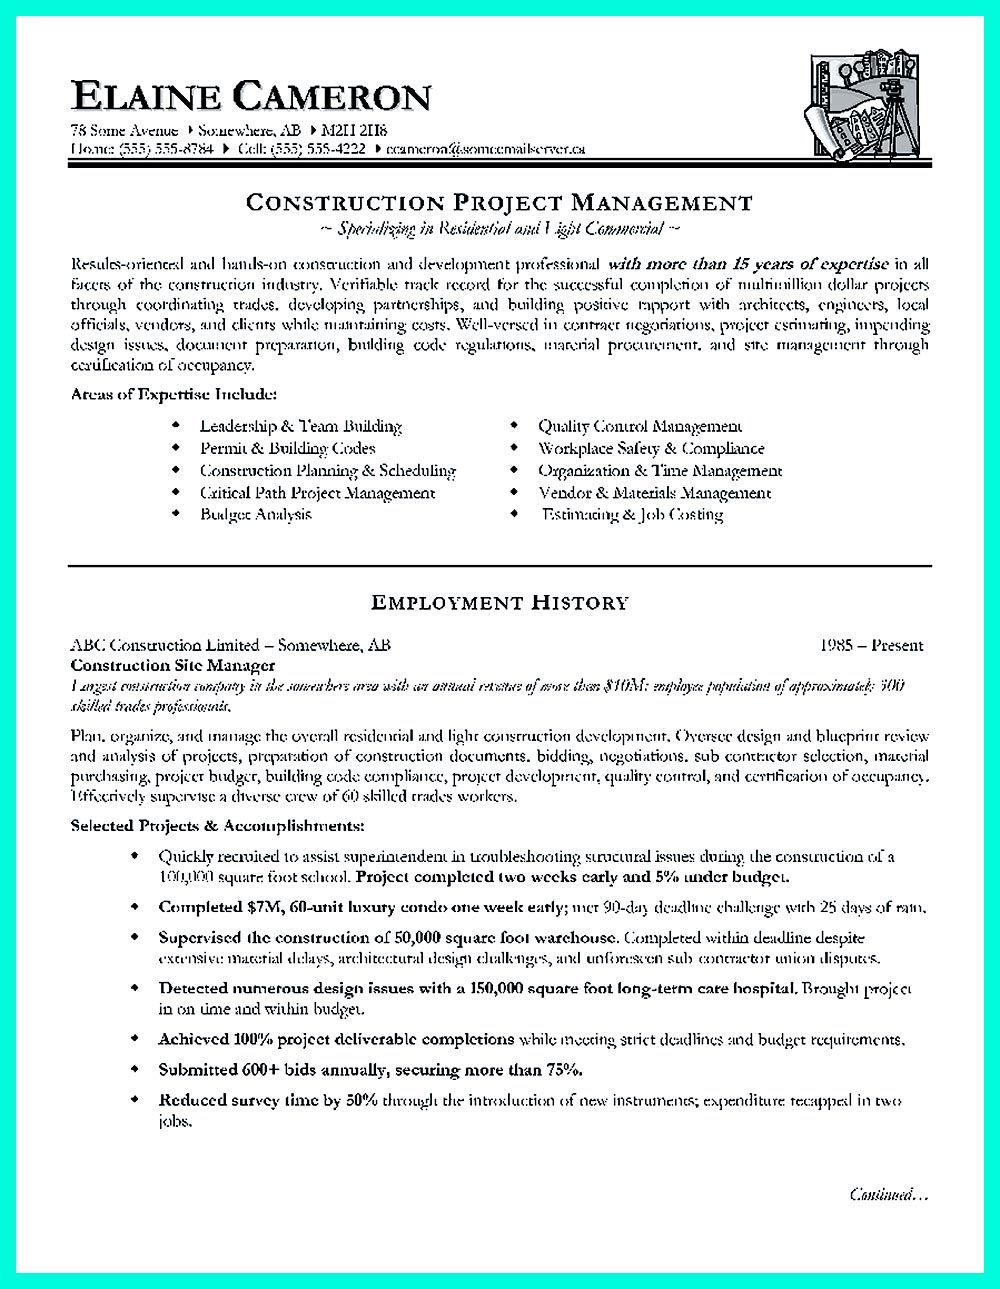 construction project manager resume for experienced one must be construction project manager resume for experienced one must be made professional profile education